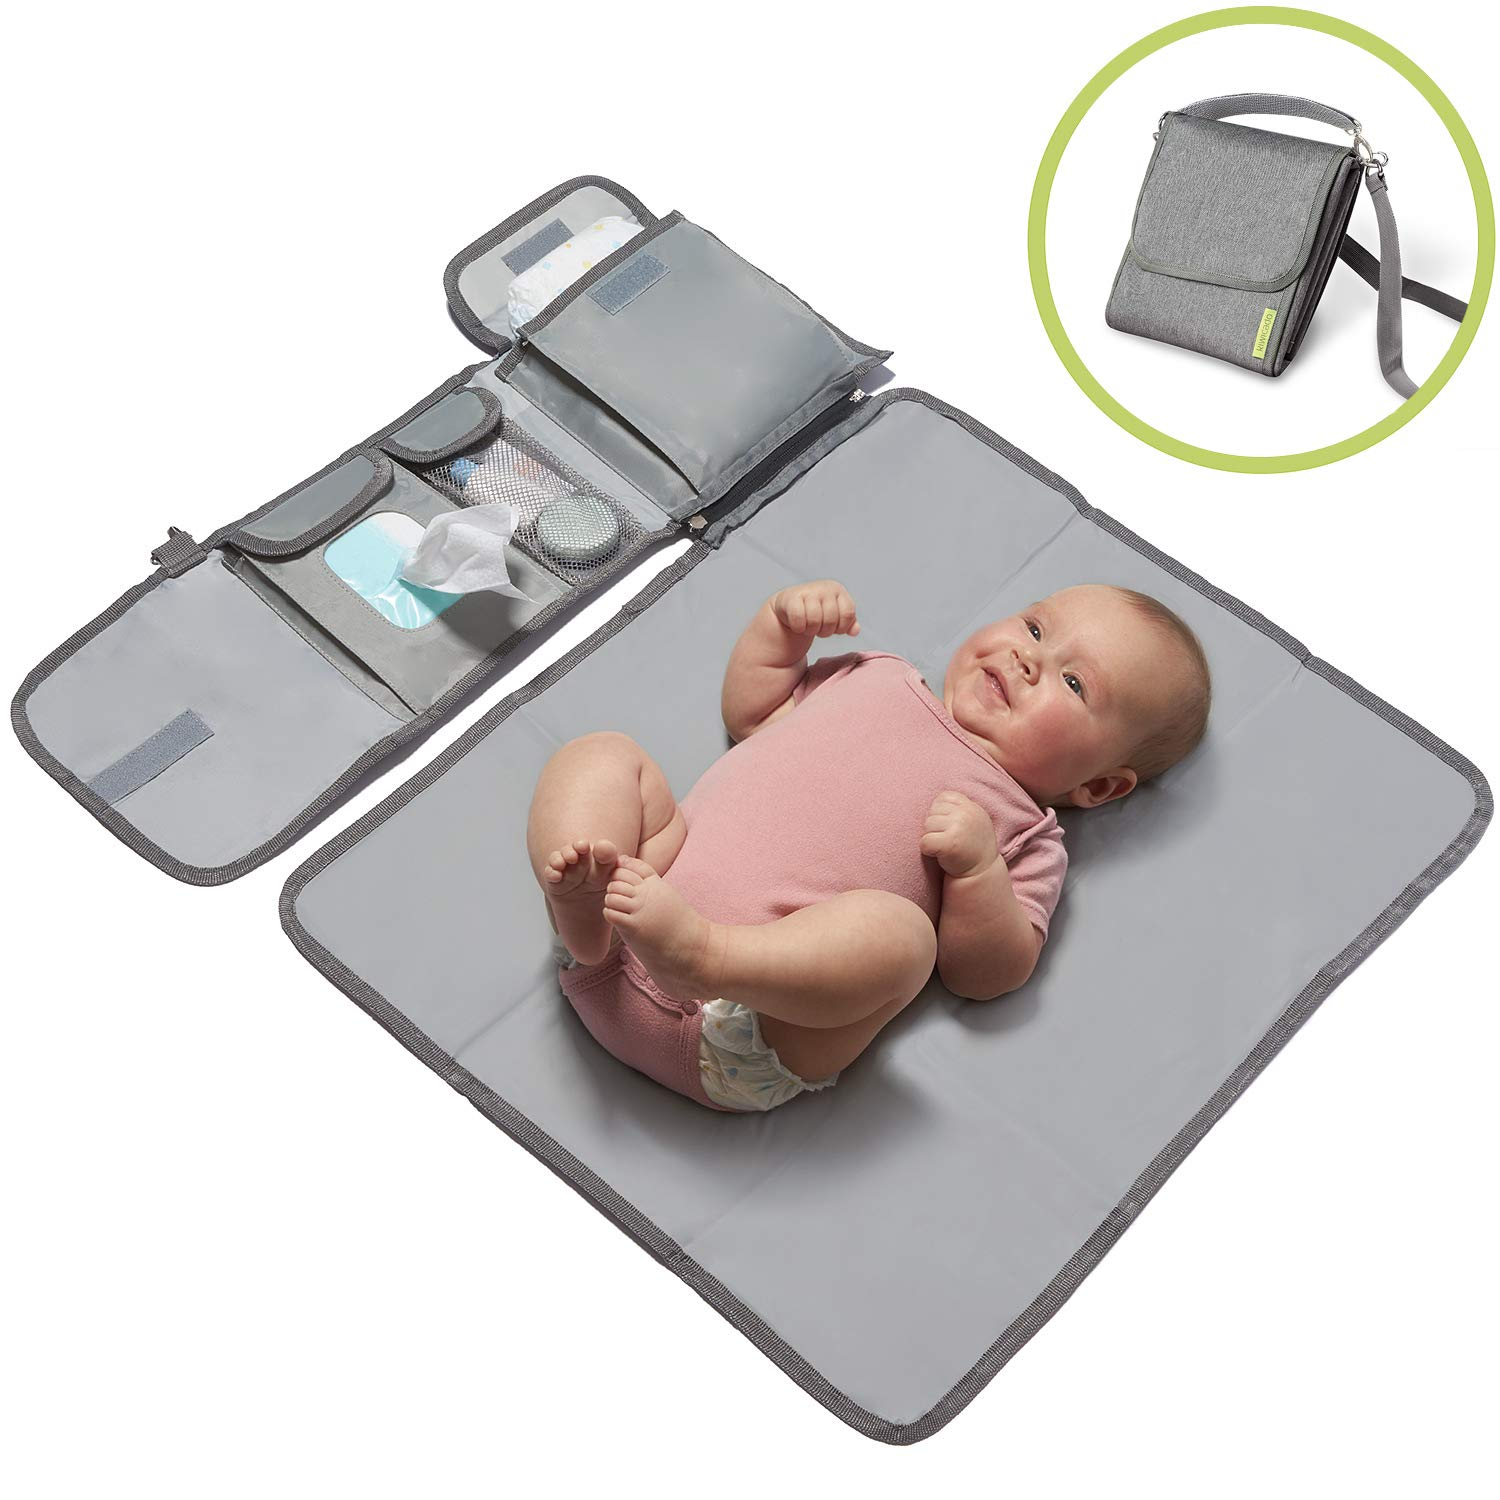 Kiwicado Small with Removable Travel Baby Changing Mat Baby Nappy Changing Bag Travelling Waterproof Changing Table Compact Wrap Set